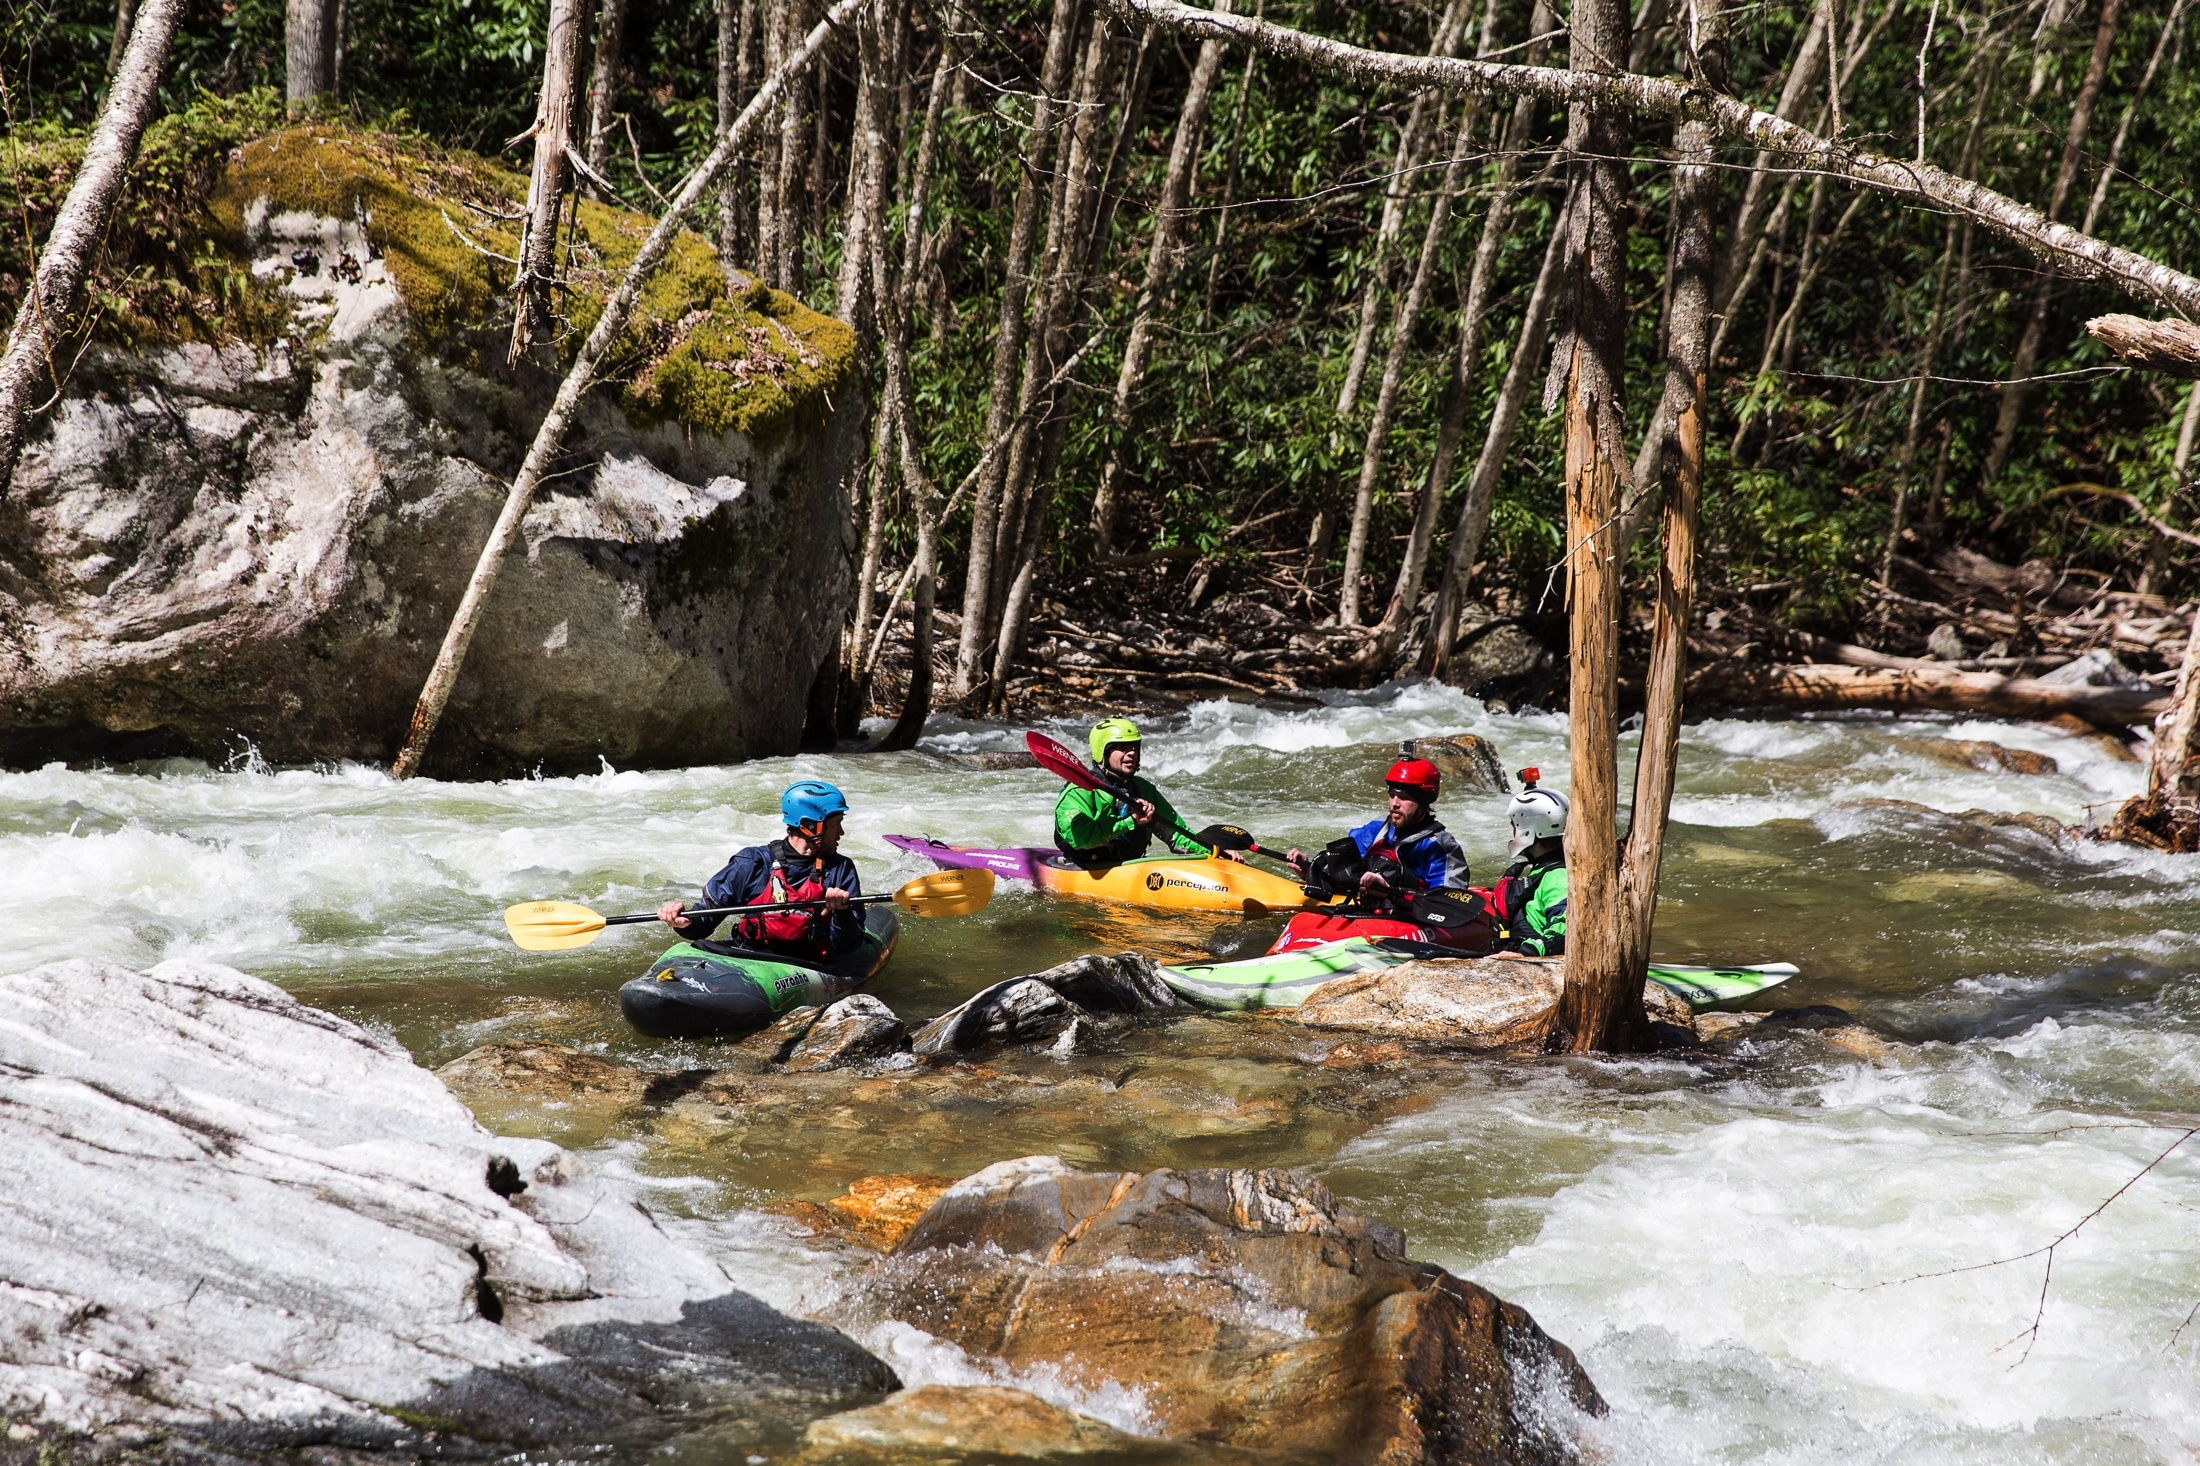 High Falls recreational releases feature Class IV rapids for paddlers